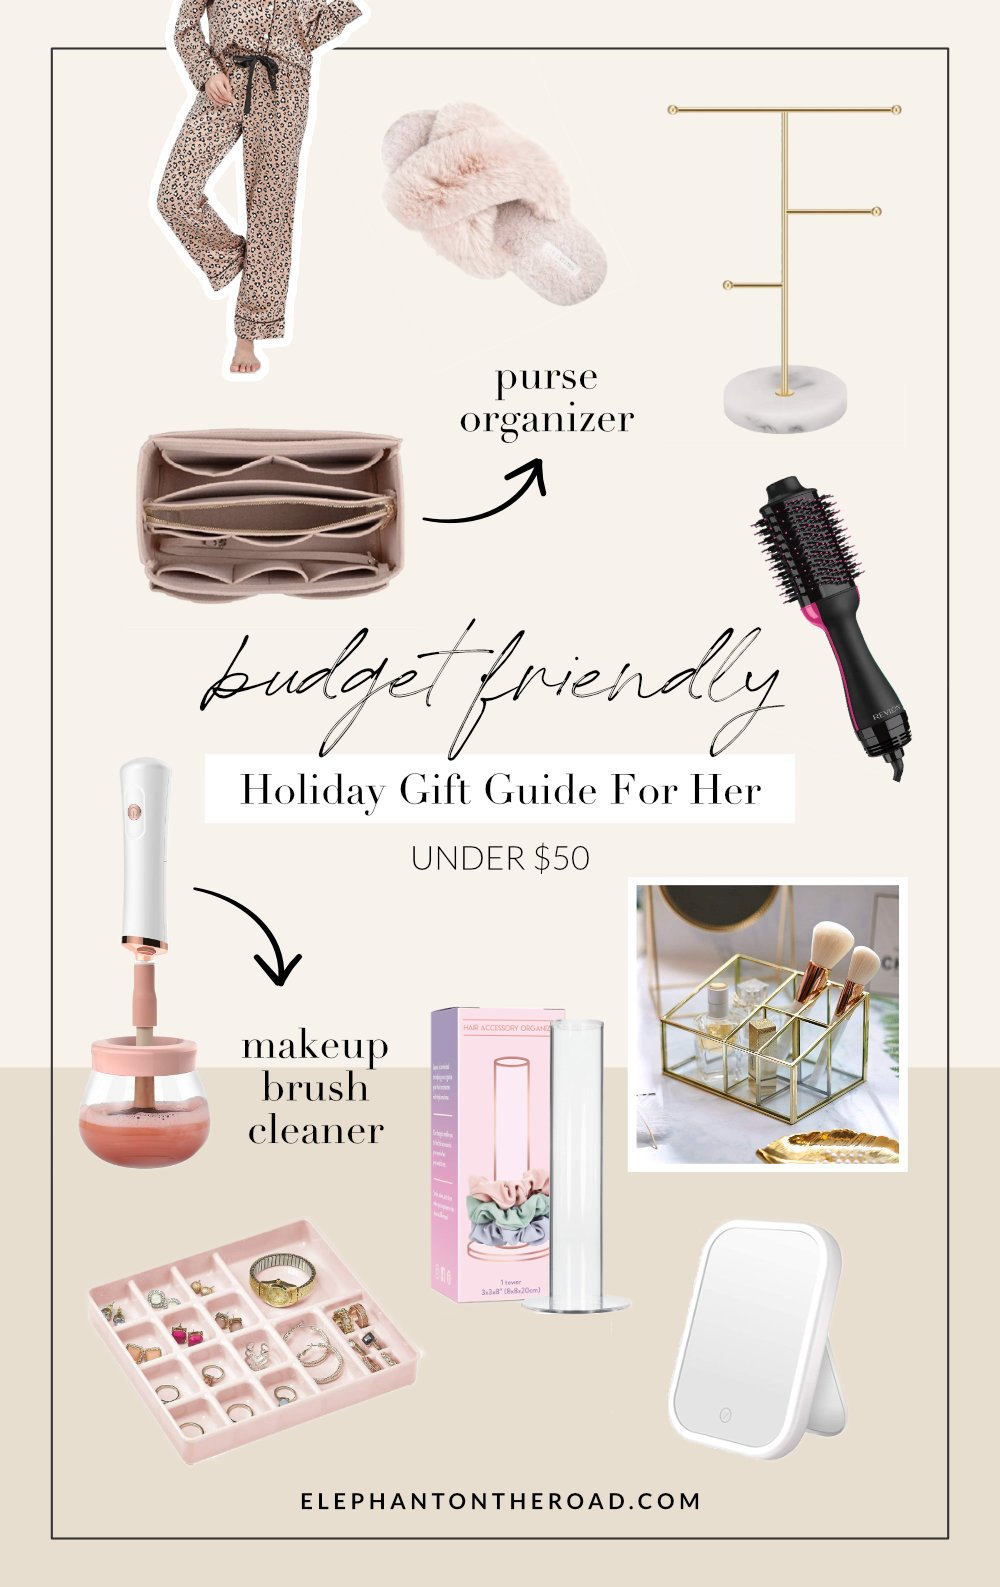 Budget-Friendly Holiday Gift Guide For Her. Cheap Christmas Gift Ideas For Girlfriend. Affordable Christmas Gift Ideas For Wife. Affordable Gift Guide For Her. Affordable Christmas Gift Guide. Elephant on the Road.